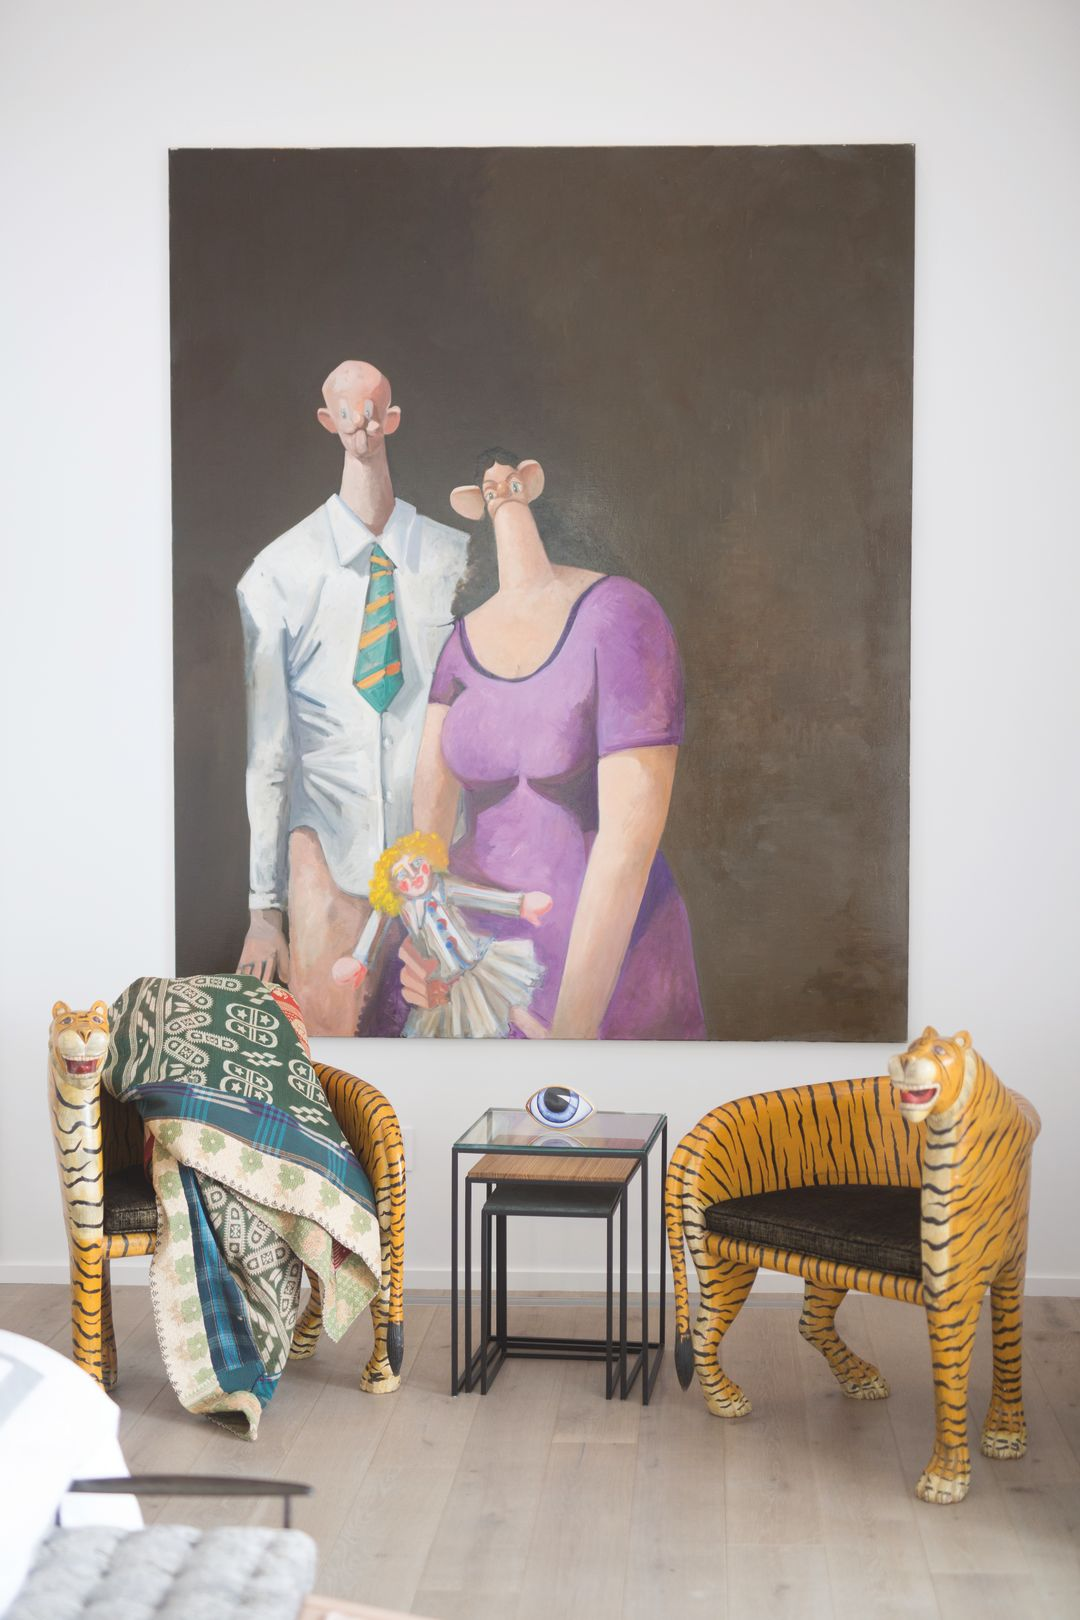 Vail s Most Prolific Arts Patrons Donate Their Private Collection to the  Public 2dbfeb13b641